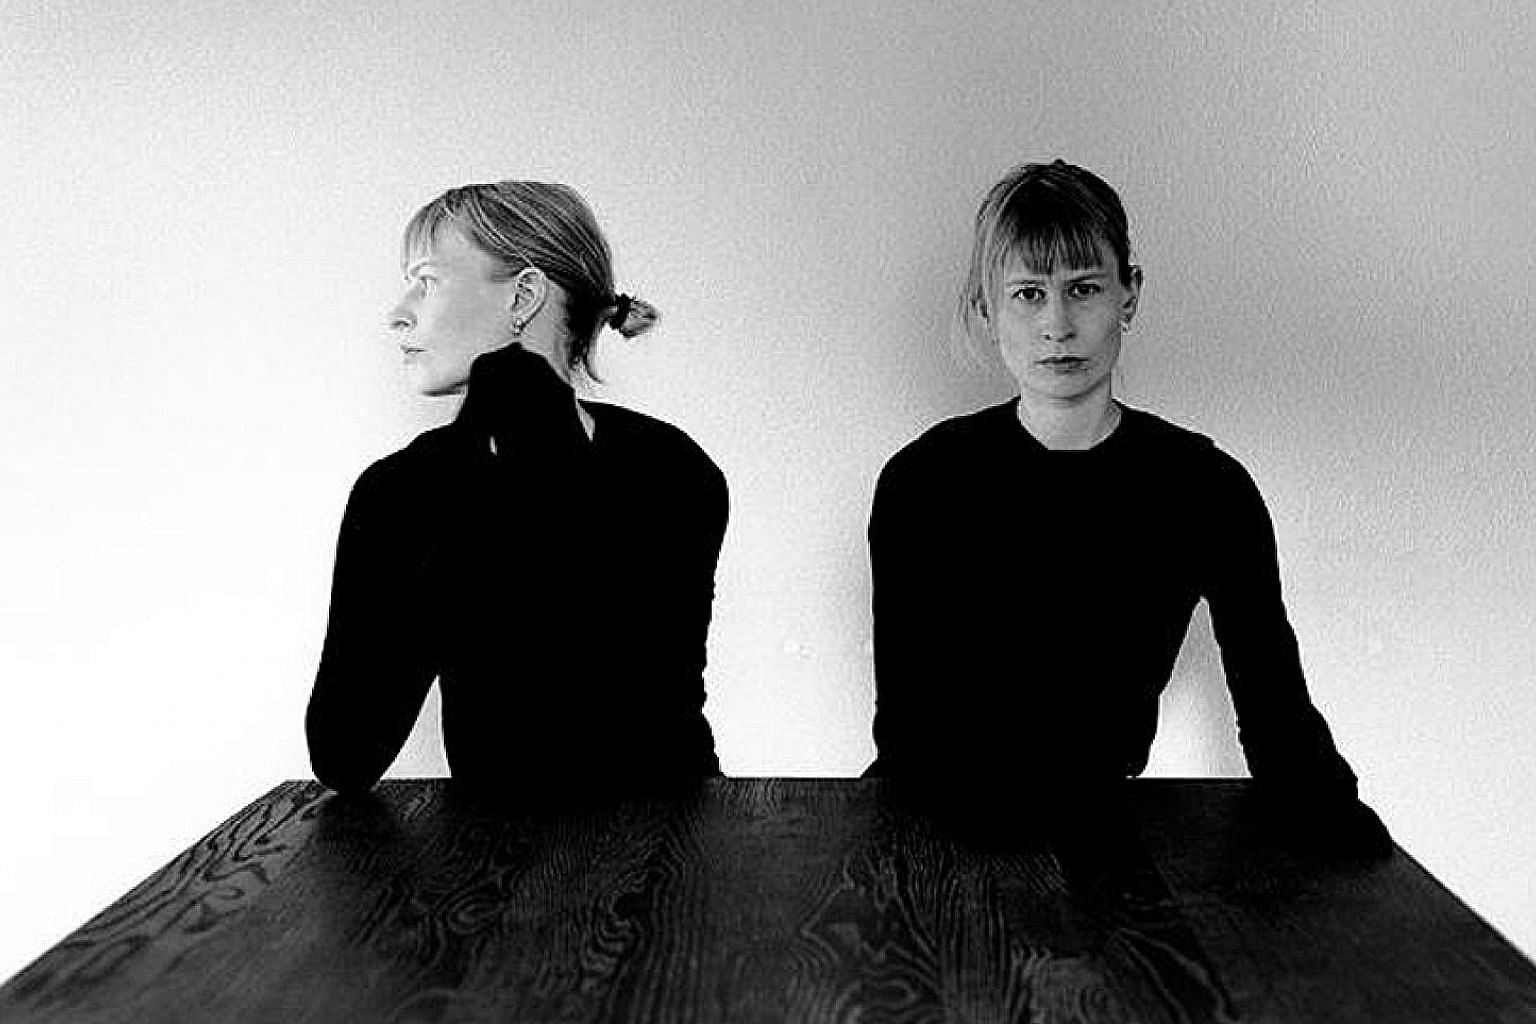 Jenny Hval is a Norwegian singer-songwriter, record producer, musician and novelist.